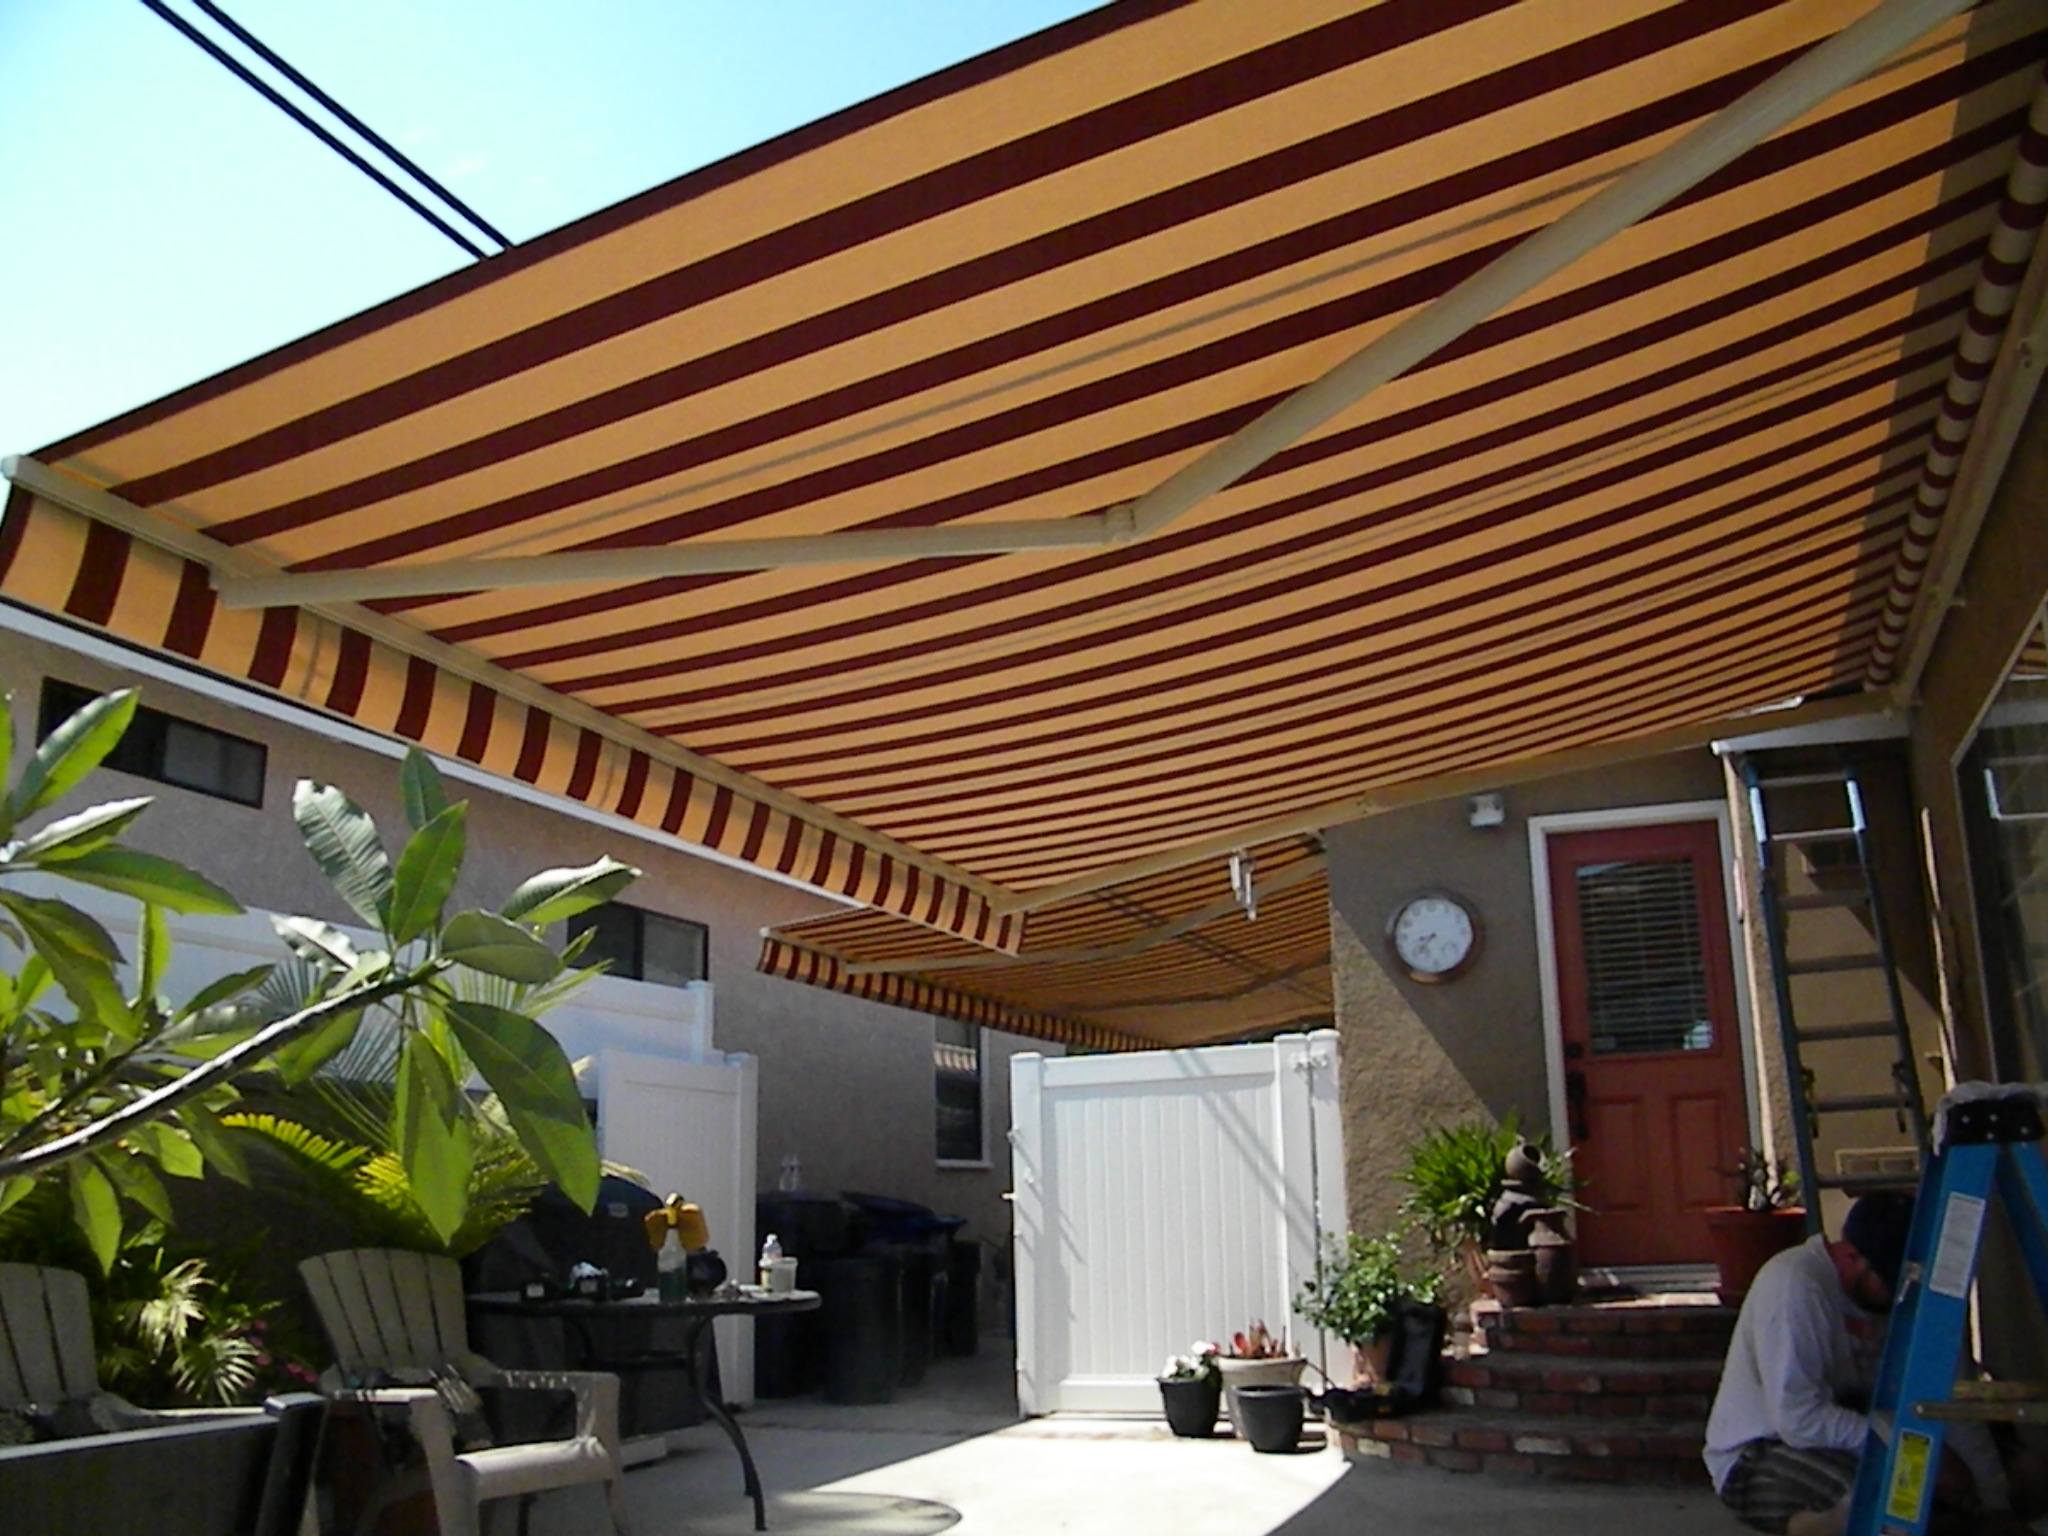 Retractable Awnings Made In The Shade Awnings